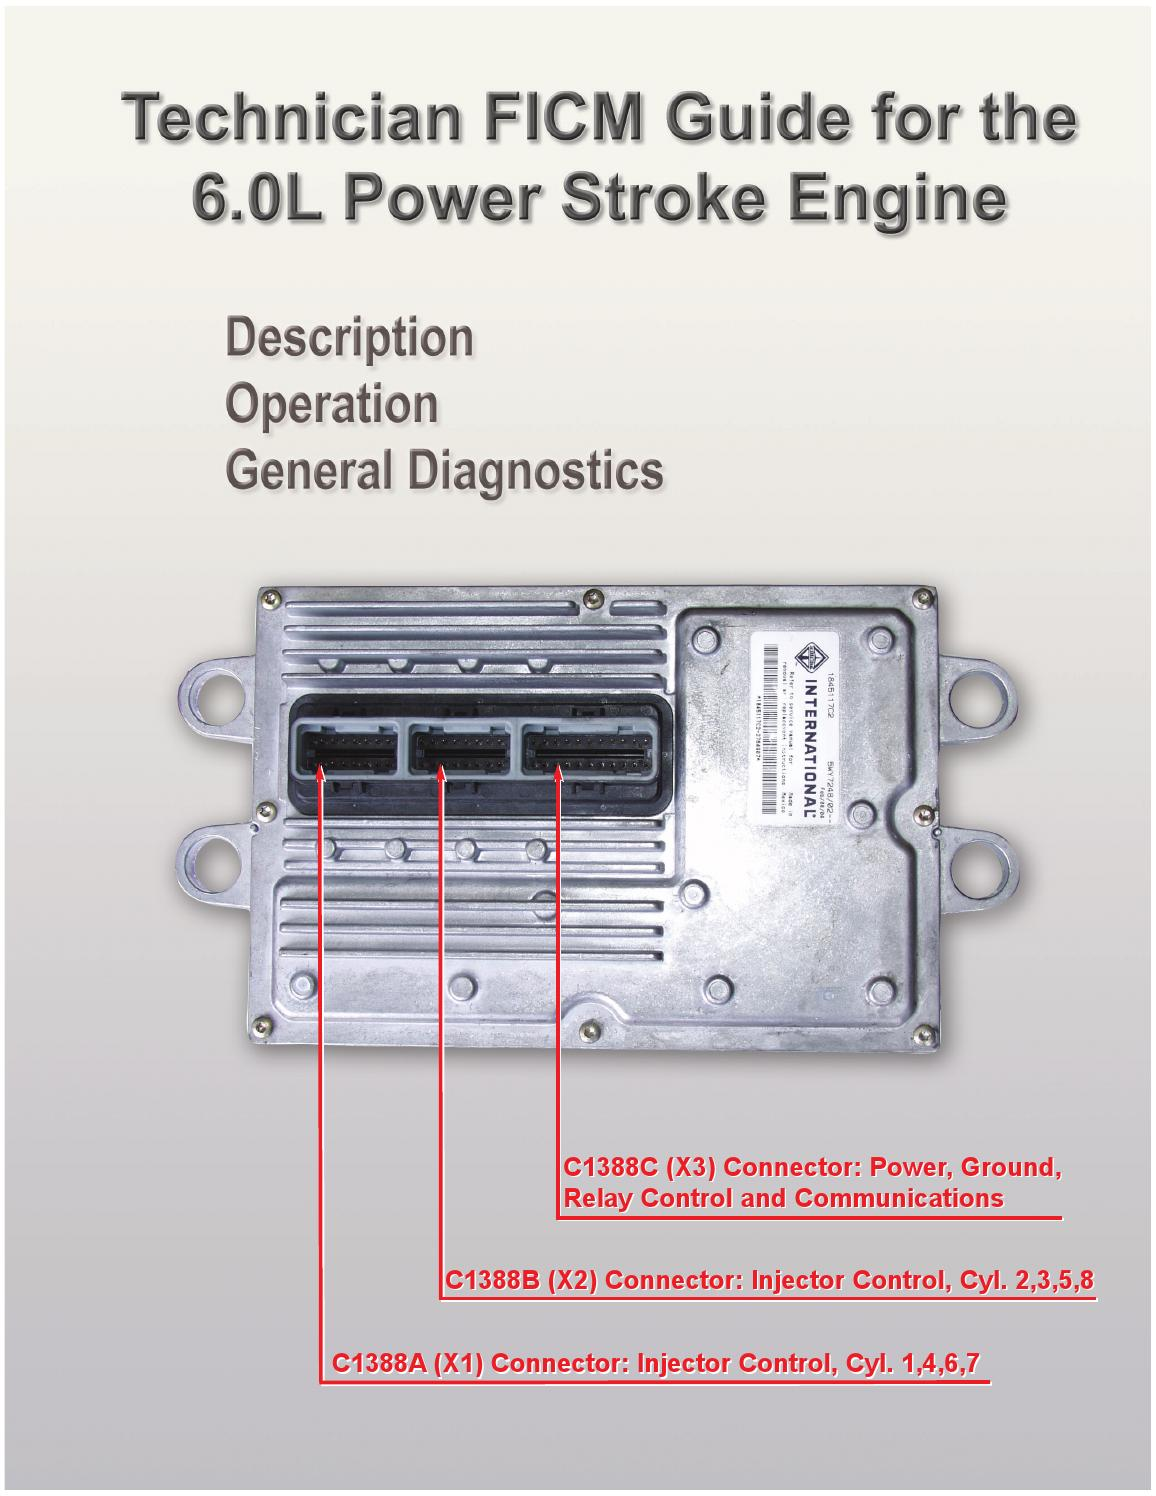 Ficm 6 0 Powerstroke Engine Diagram